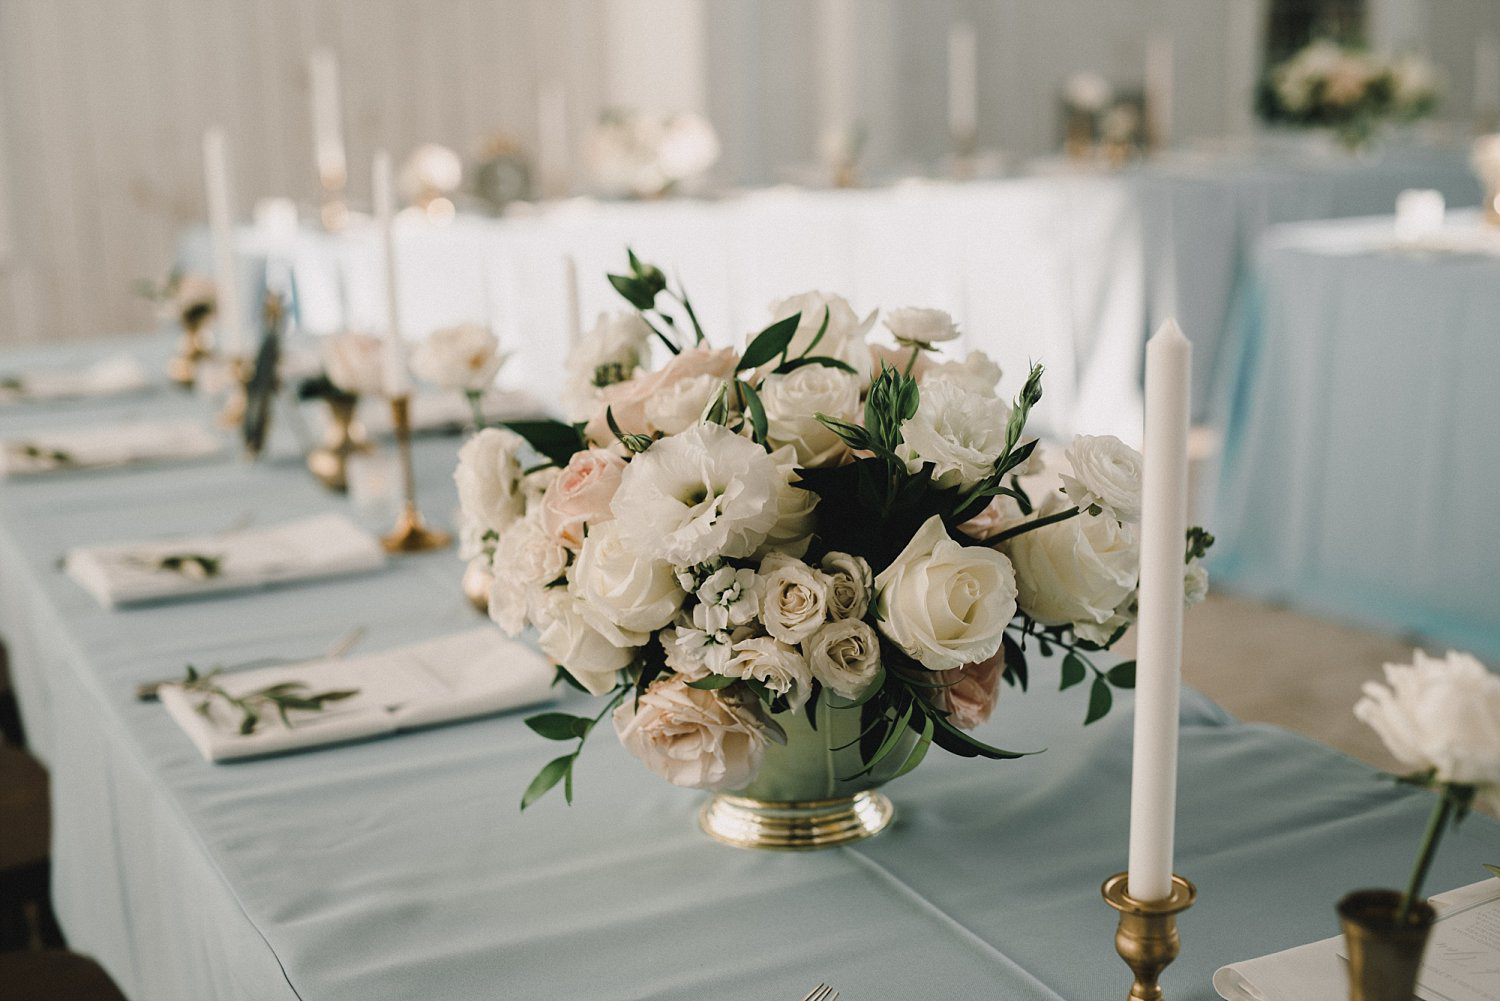 White Sparrow Barn wedding white and blush flowers in gold vase